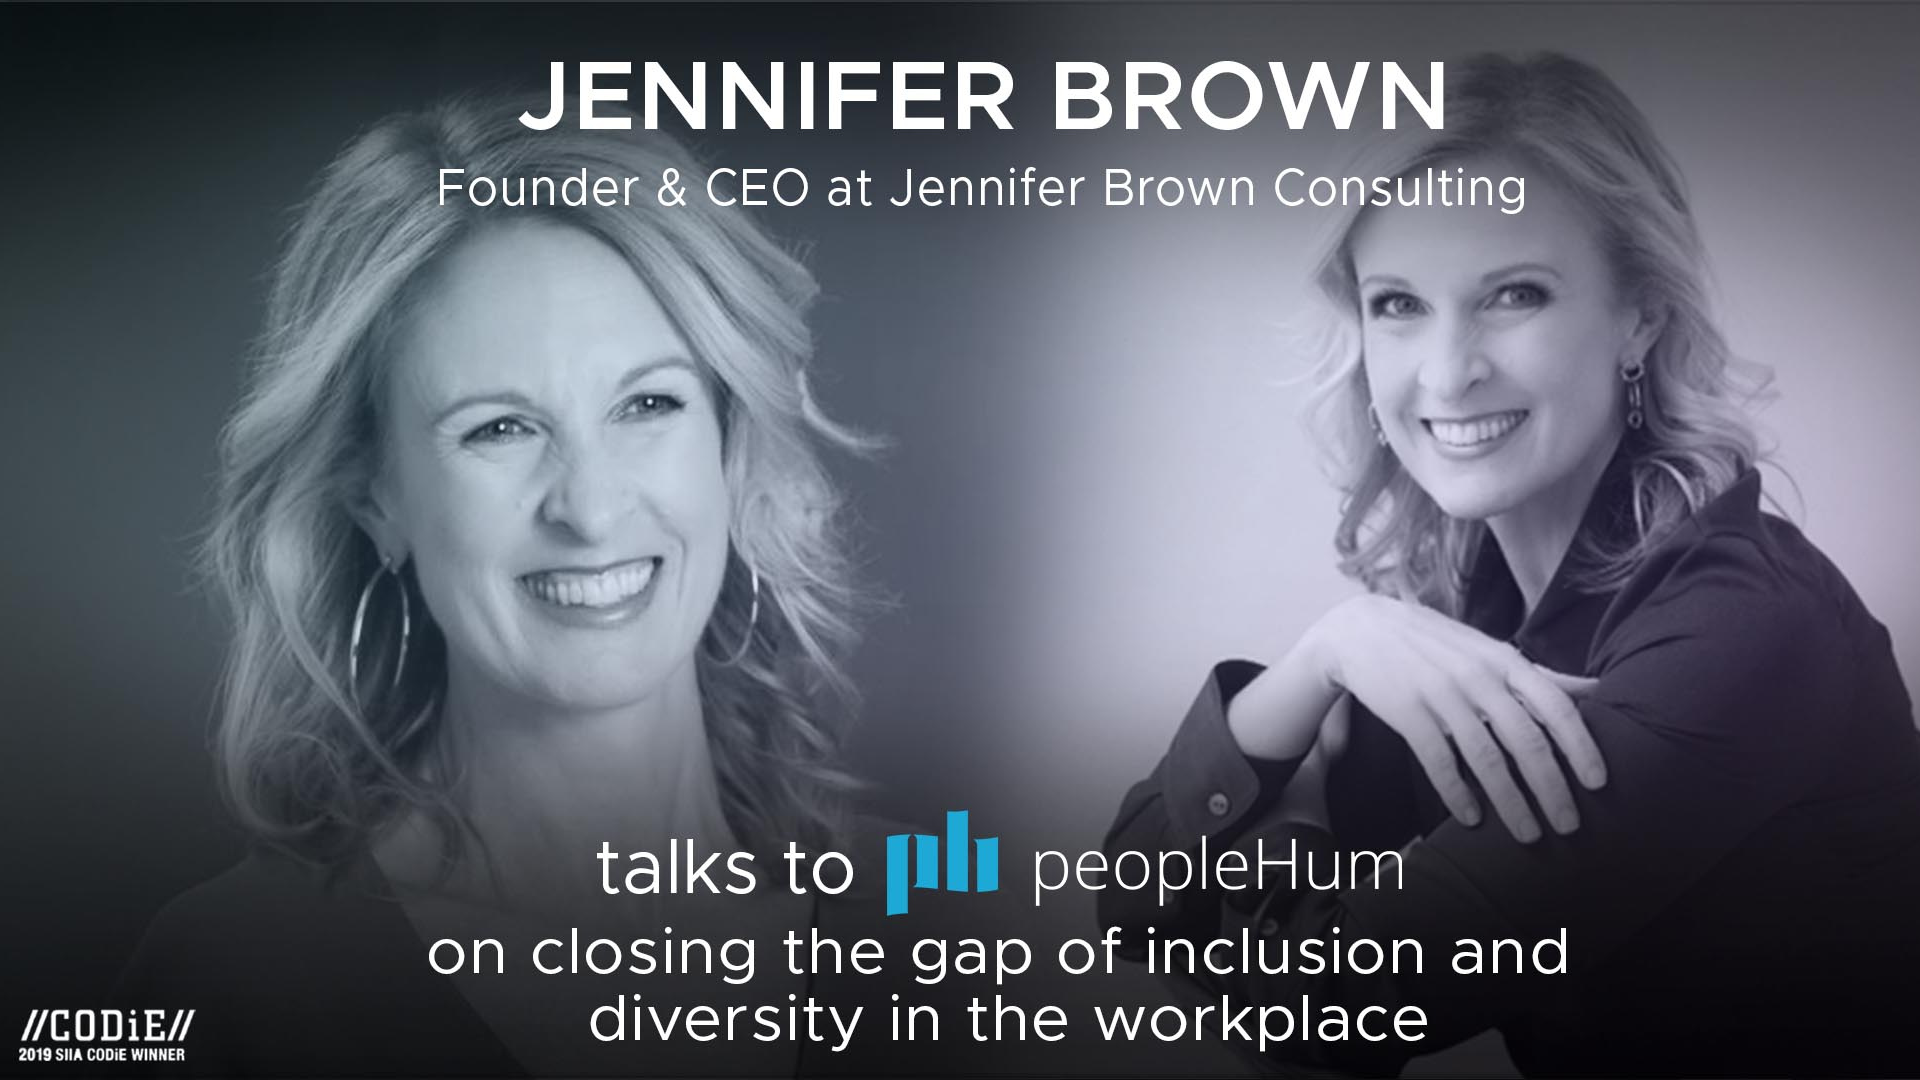 On closing the gap of inclusion and diversity in the workplace - Jennifer Brown [Interview]